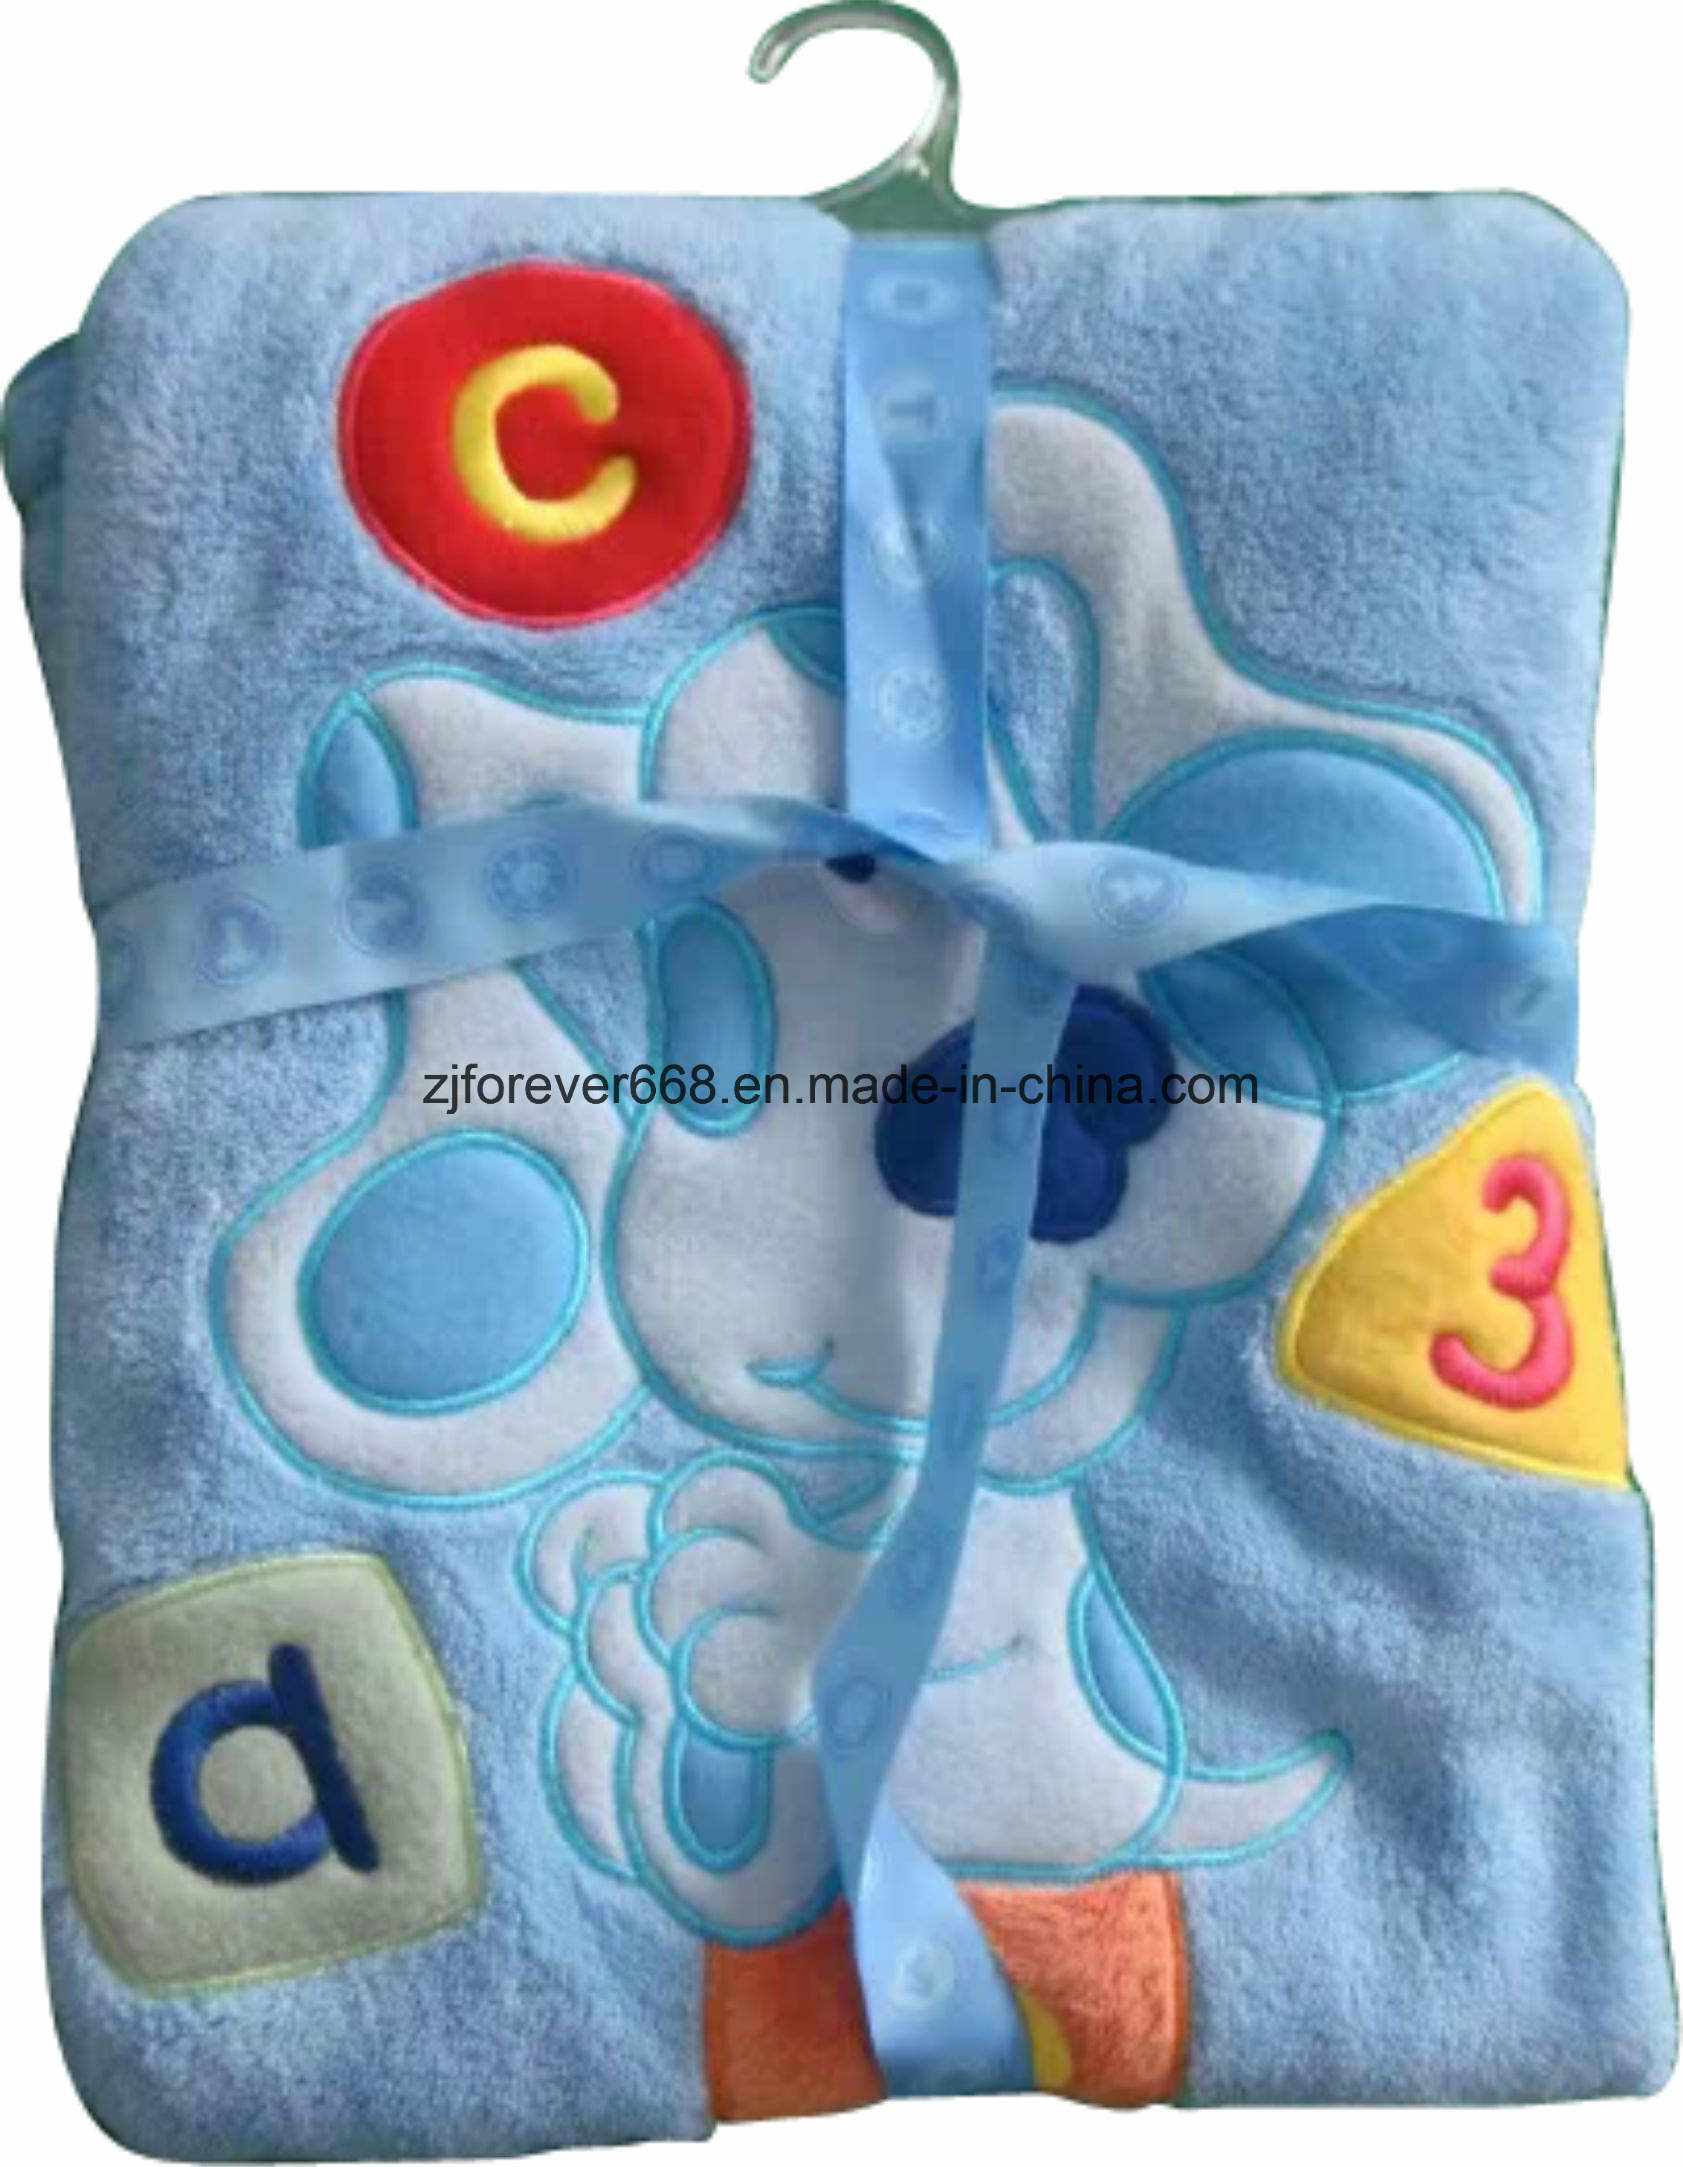 High Quality Soft Feeling Printed Toy and Baby Fleece Blanket